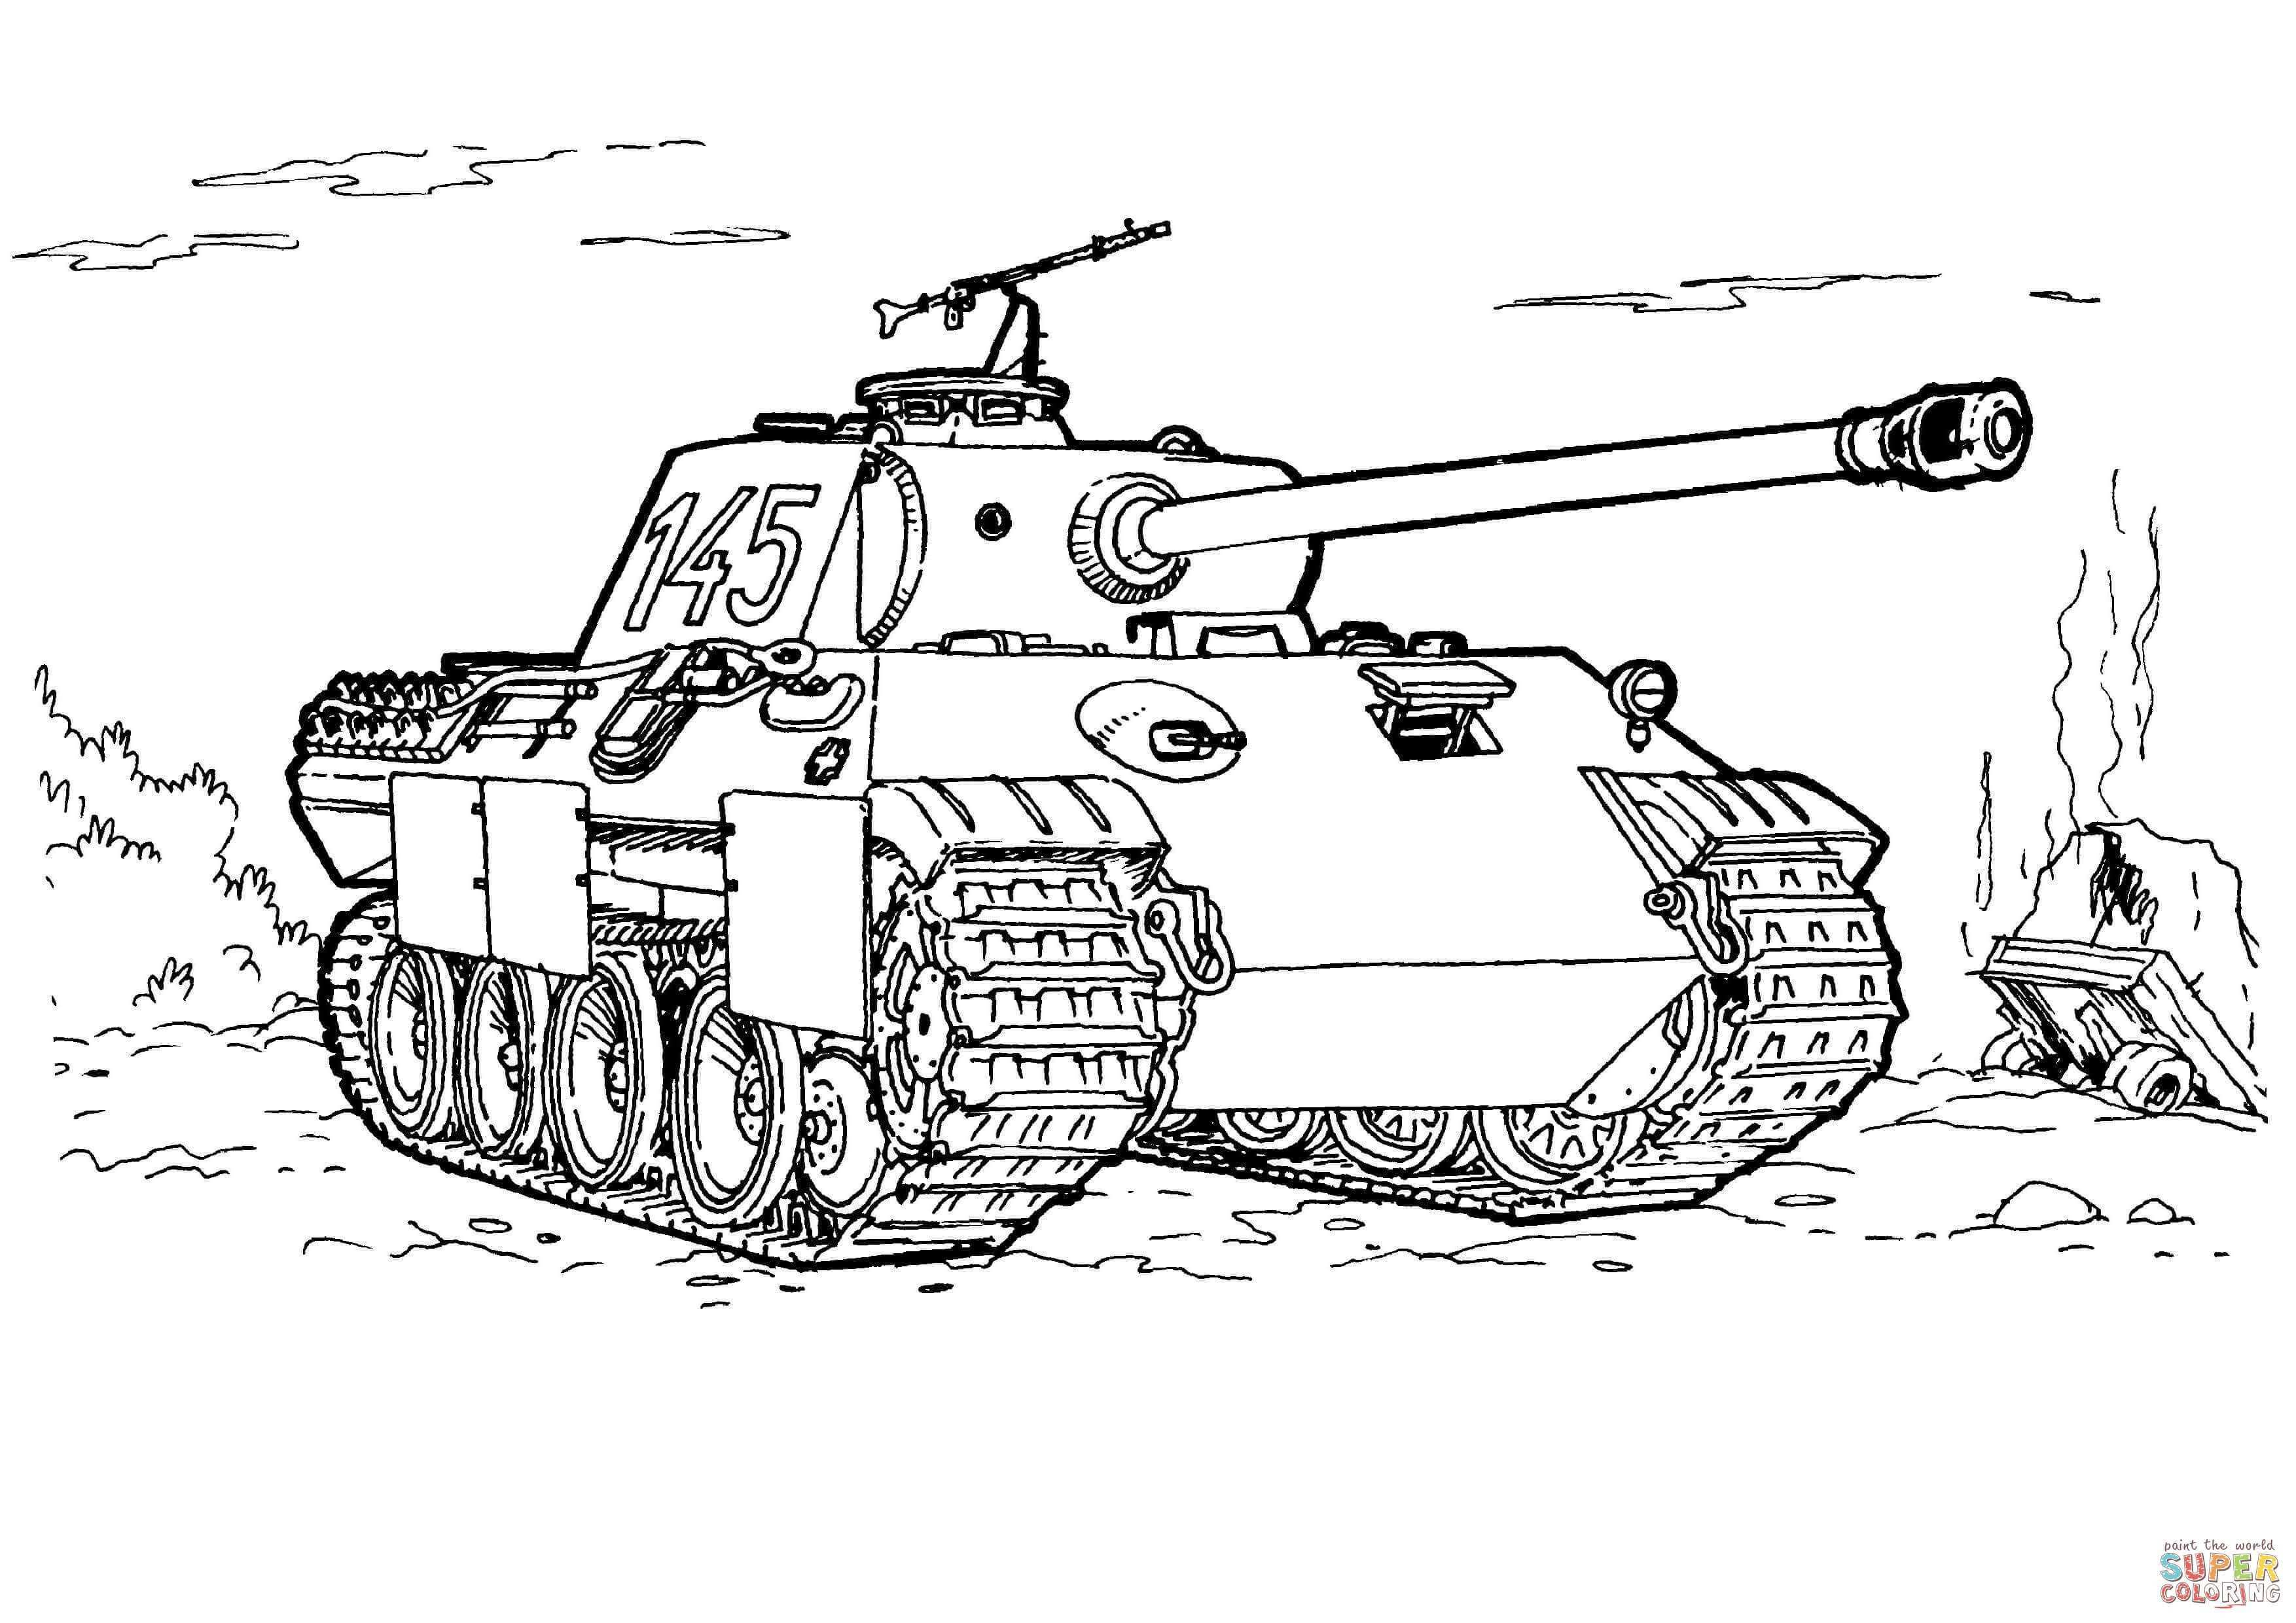 Panther Tank Coloring Page From Tanks Category Select From 27252 Printable Crafts Of Cartoons Nature Animals Tank Drawing Coloring Book Art Coloring Pages